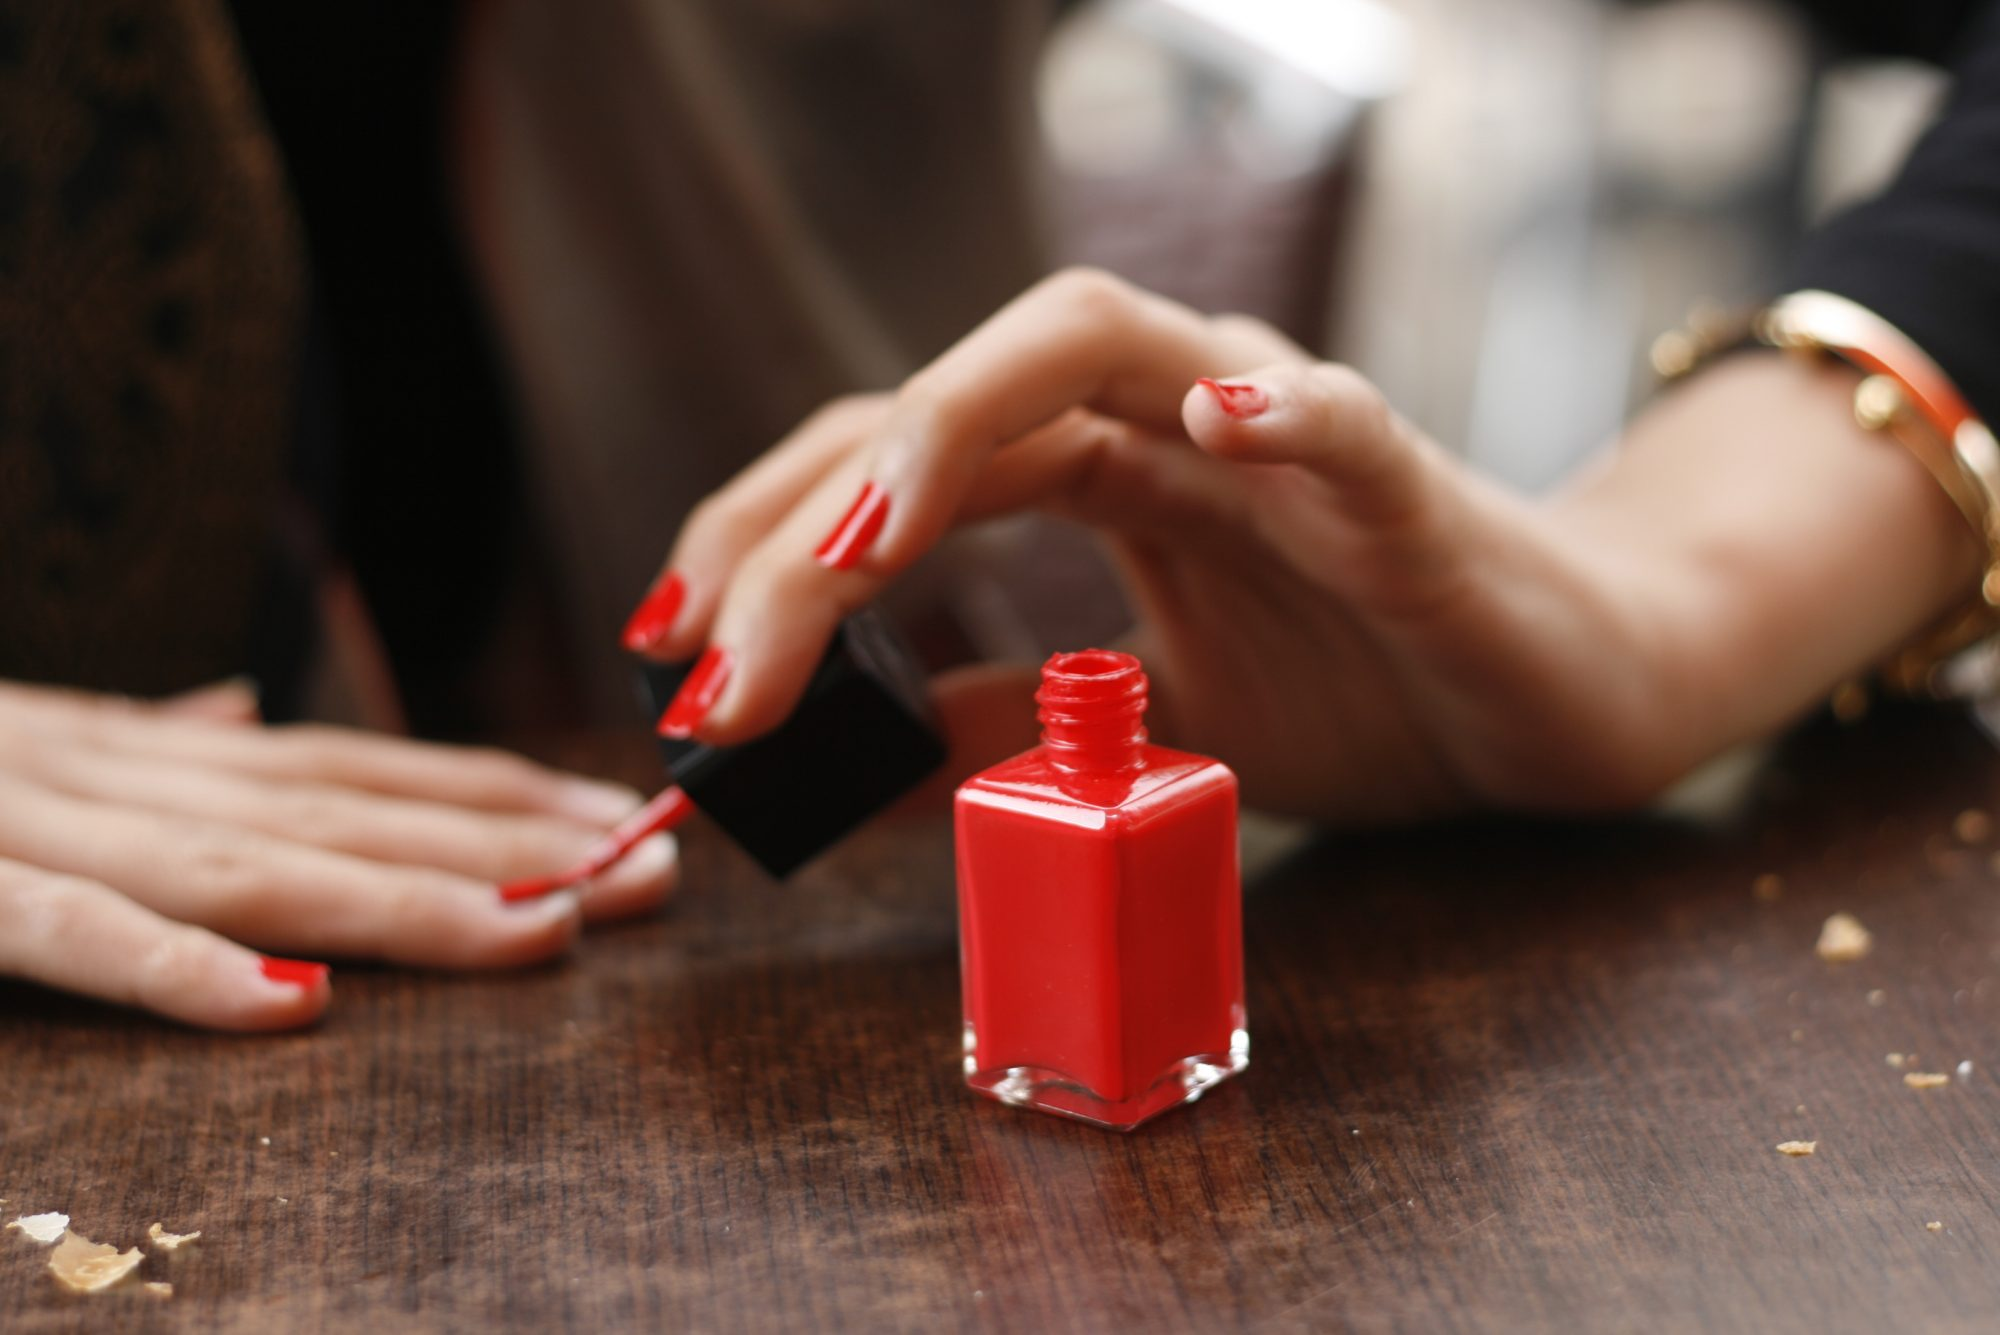 7 Major Manicure Mistakes You Might Not Realize You're Making